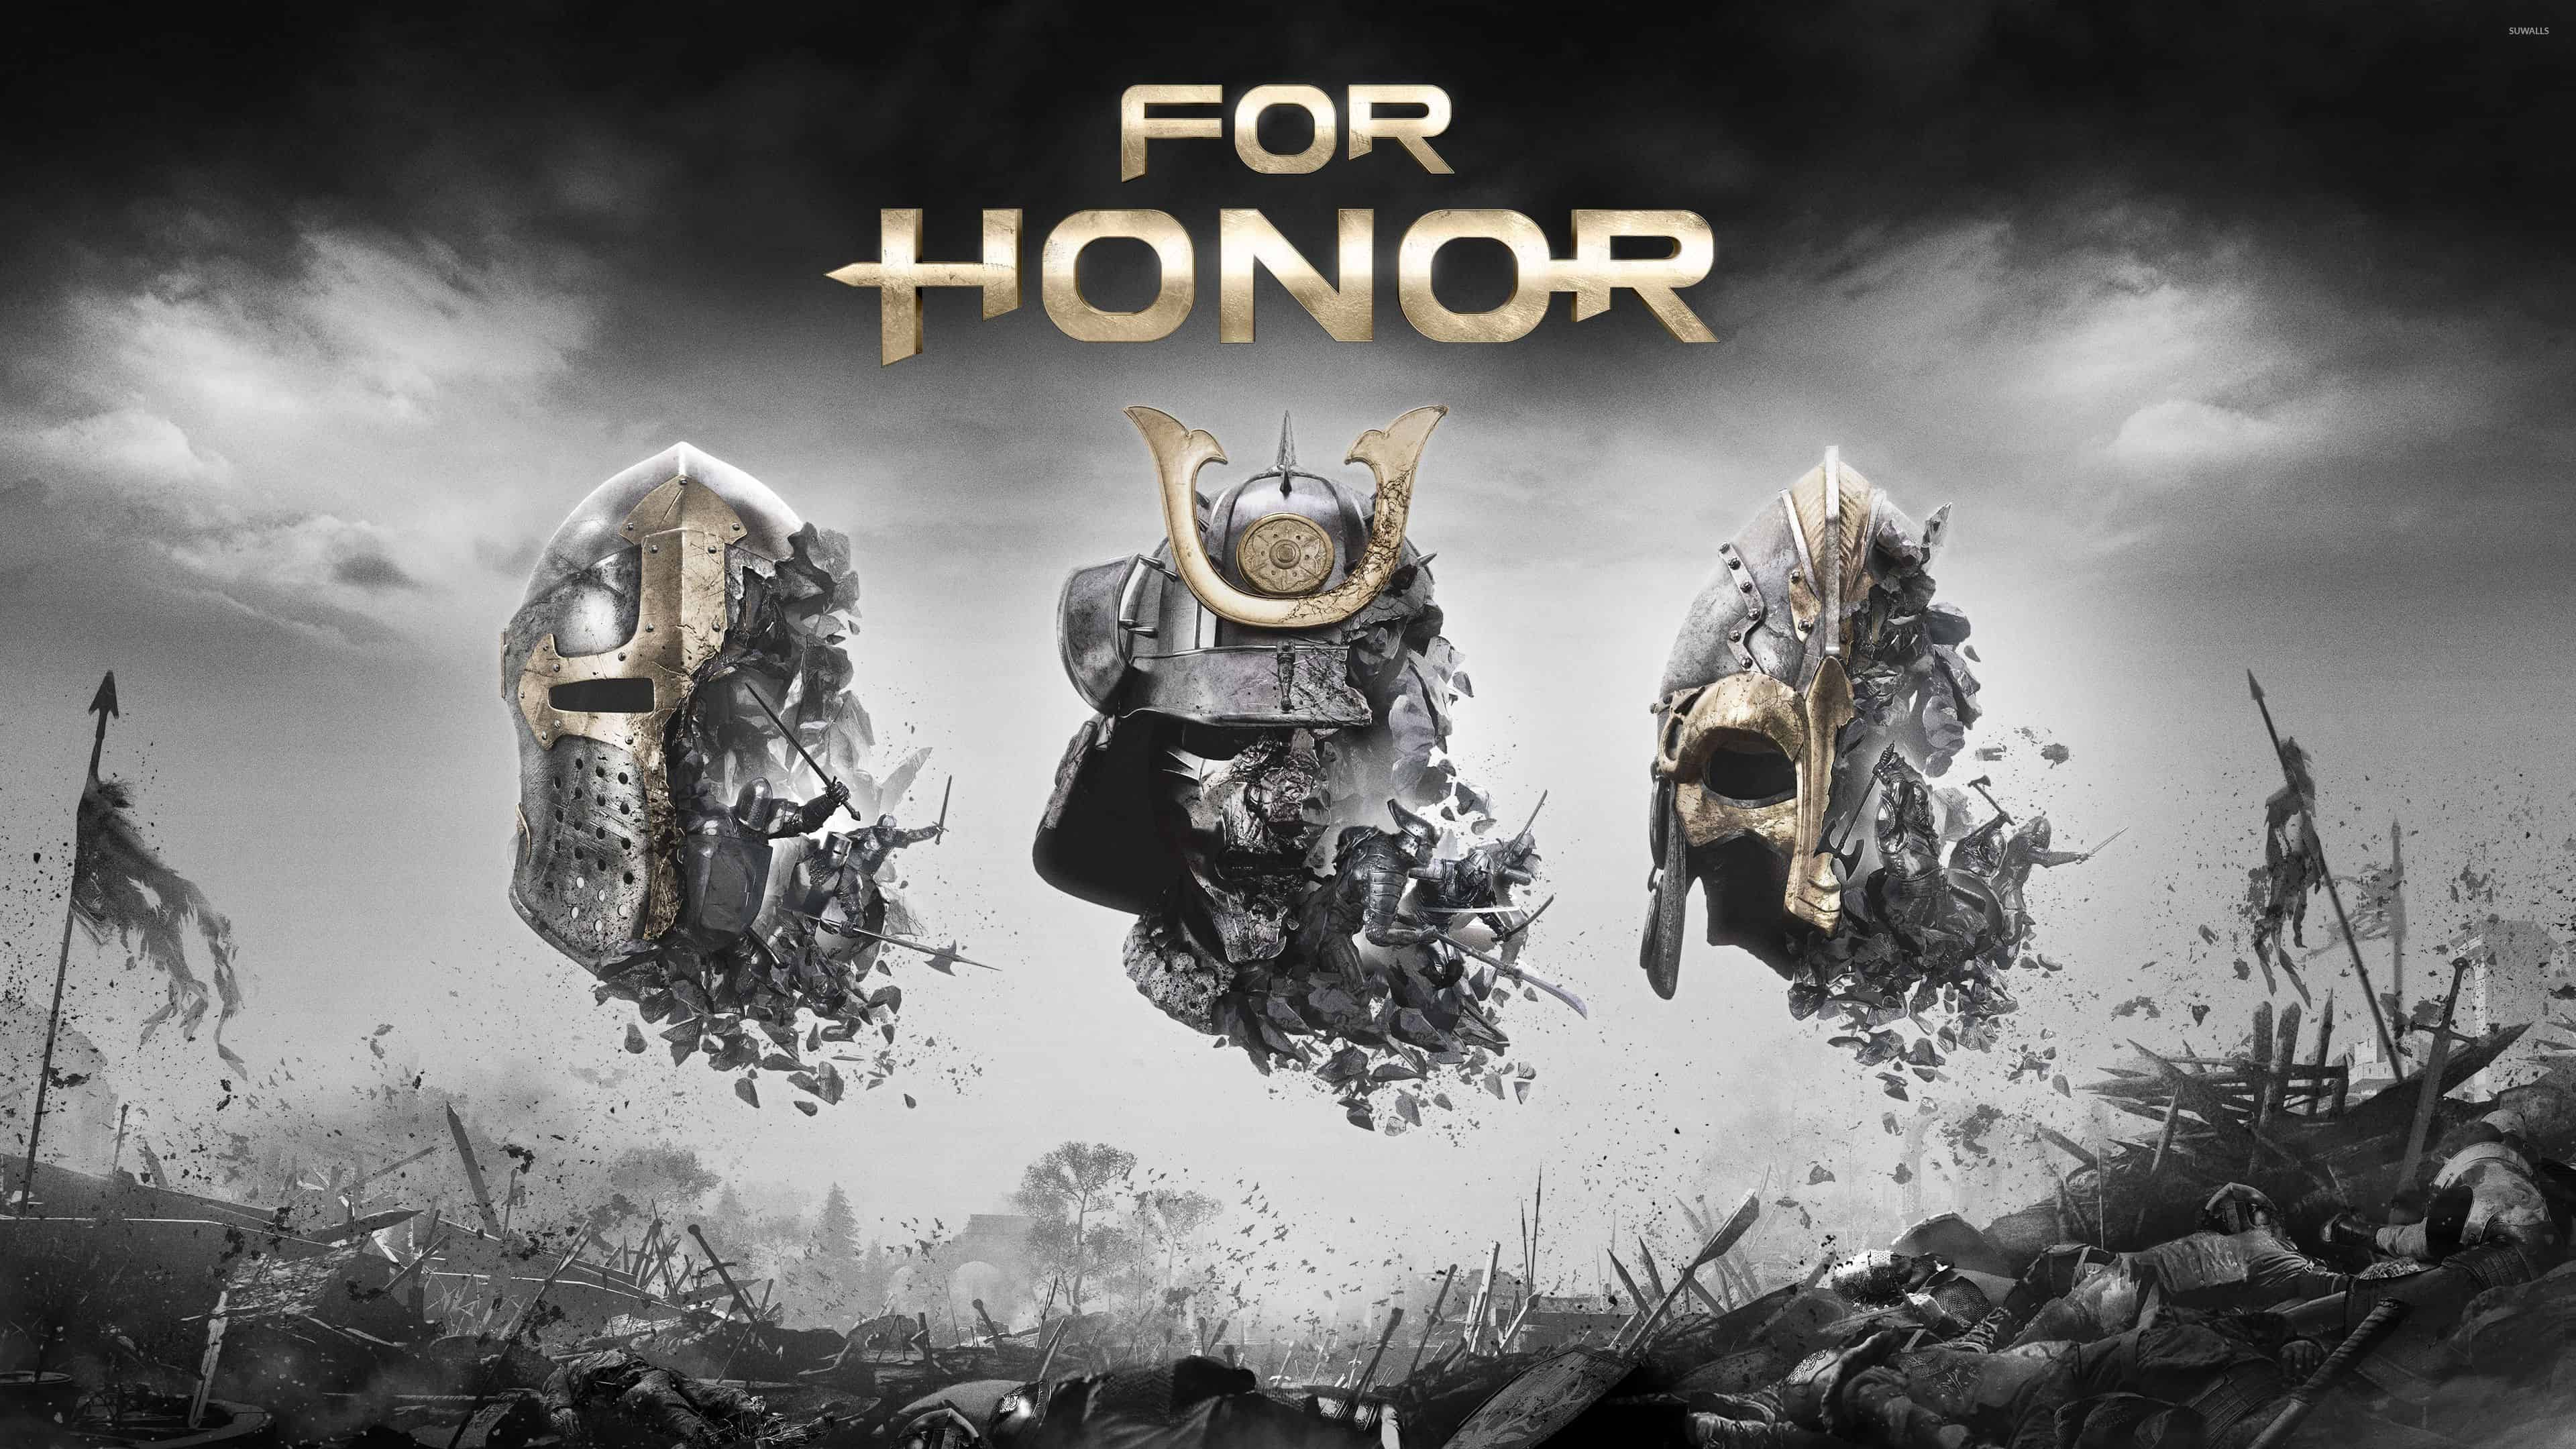 for honor collectors edition uhd 4k wallpaper